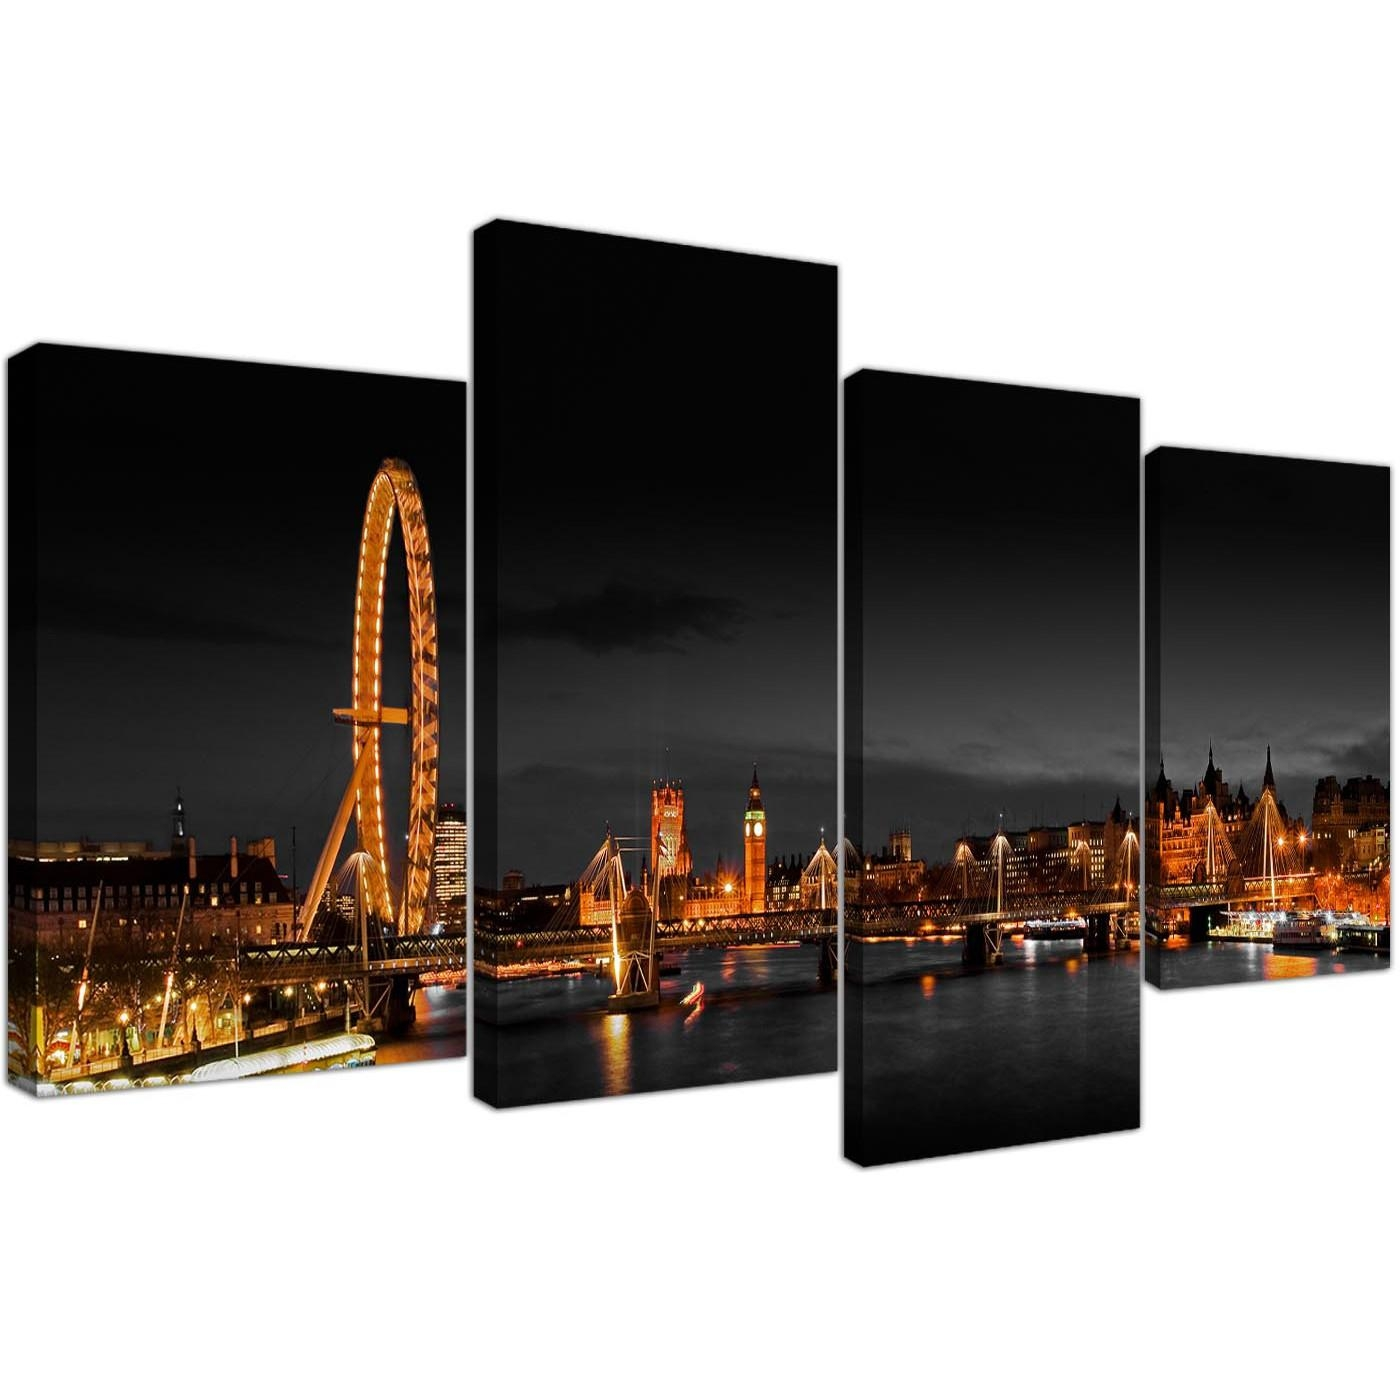 Canvas Wall Art Of Night Time London Eye For Your Office – Set Of 4 Regarding London Scene Wall Art (View 8 of 20)